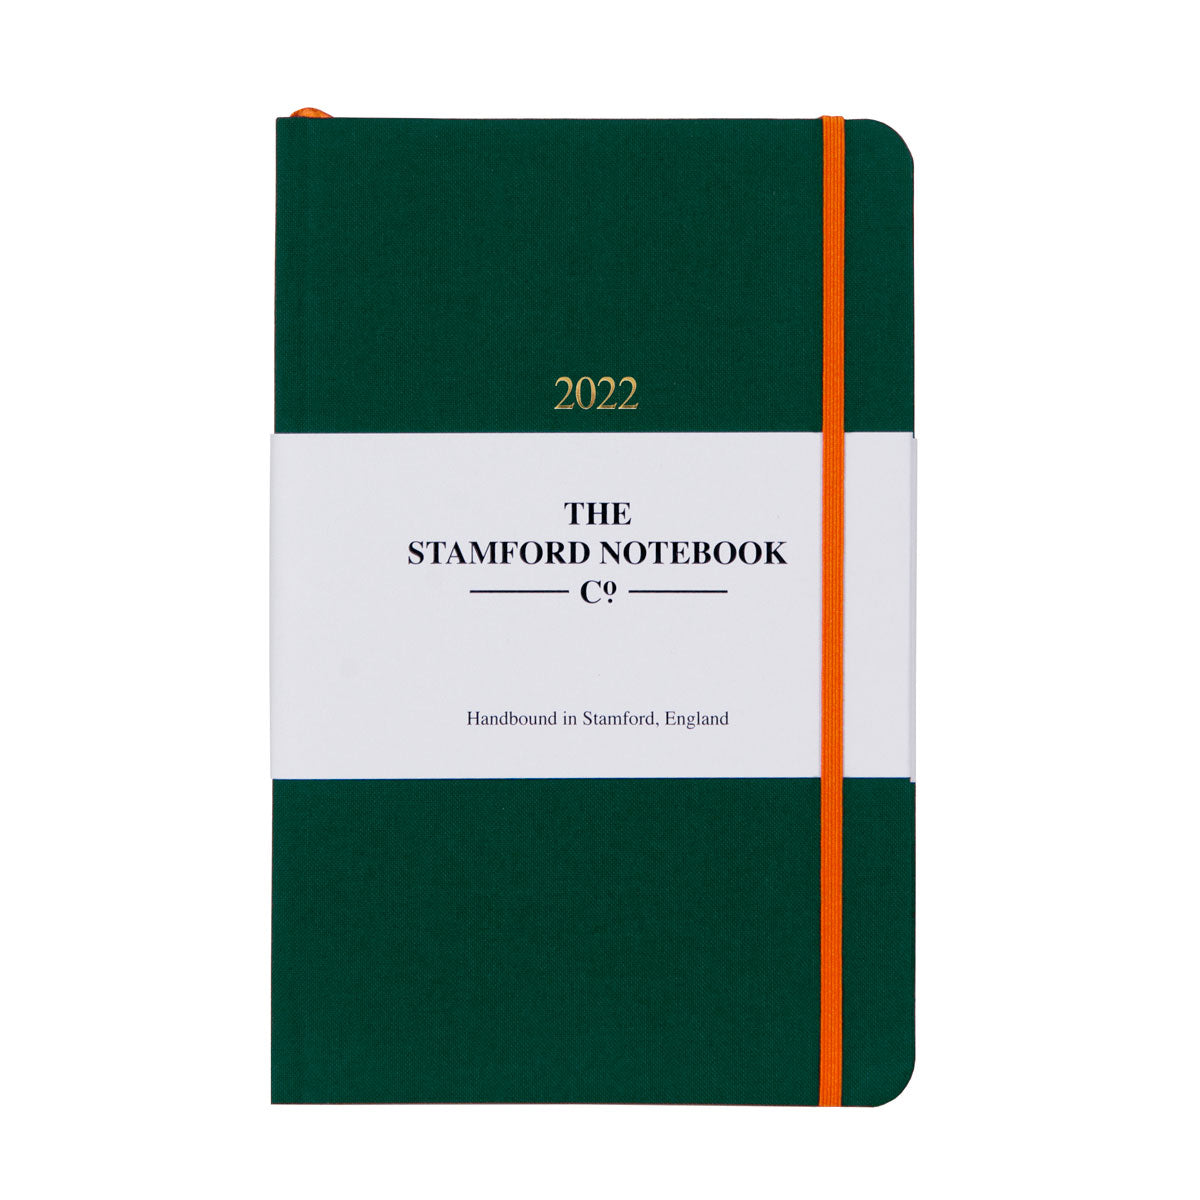 2022 racing green woven cloth diary